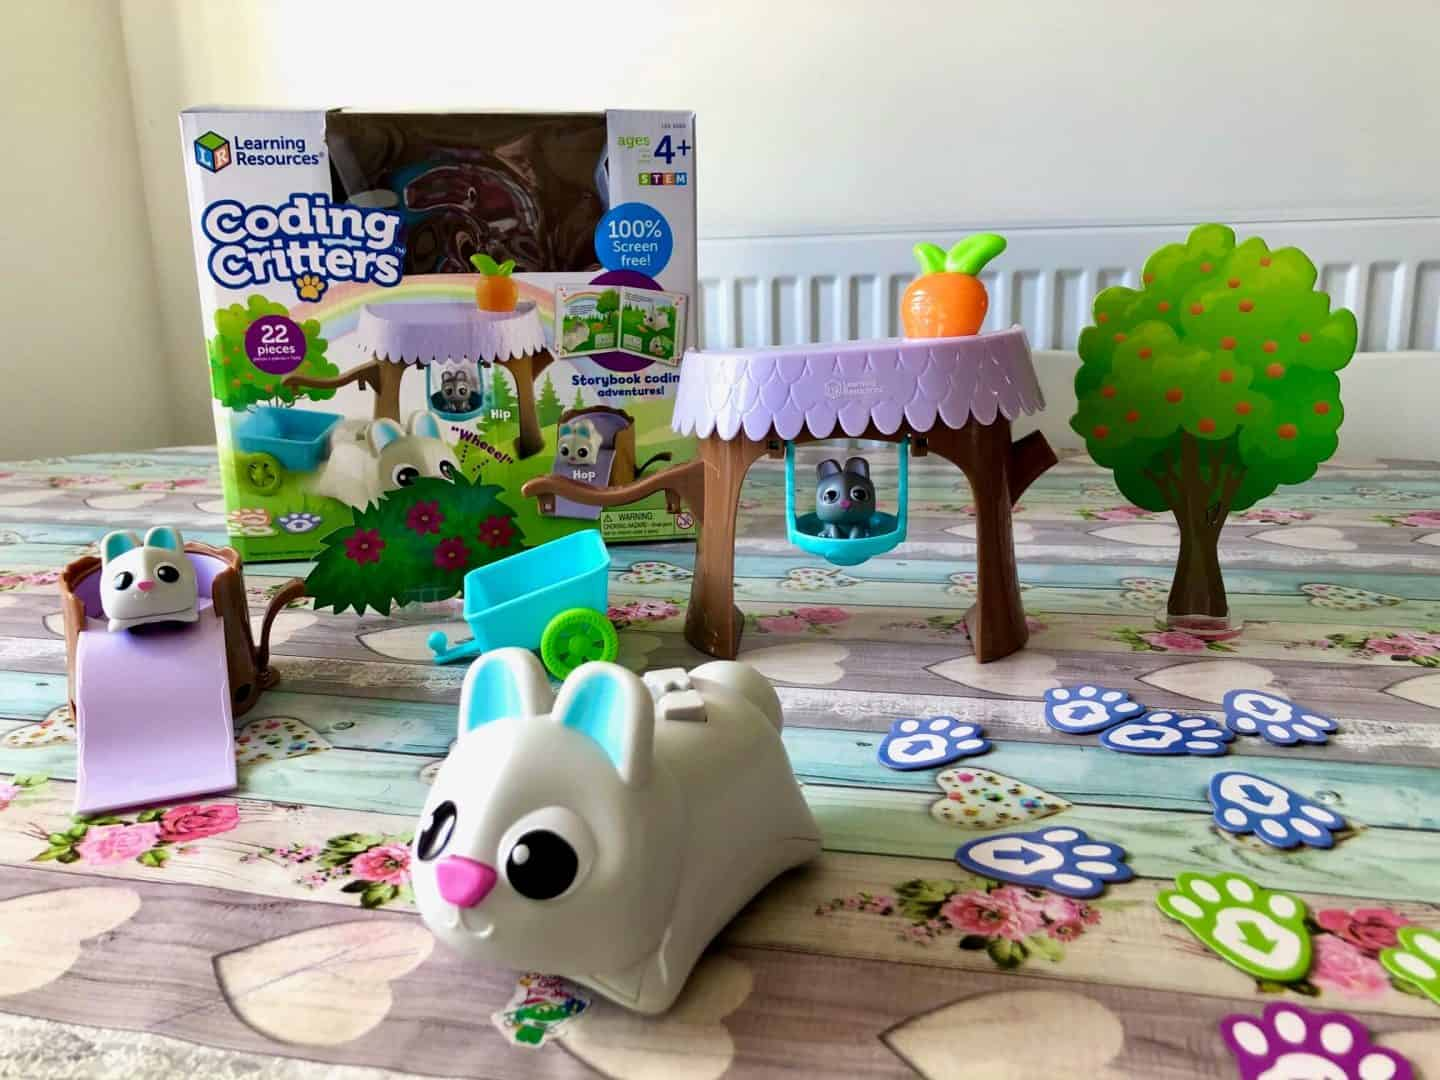 Coding Critters, Bopper, Hip and Hop 22 piece programming playset